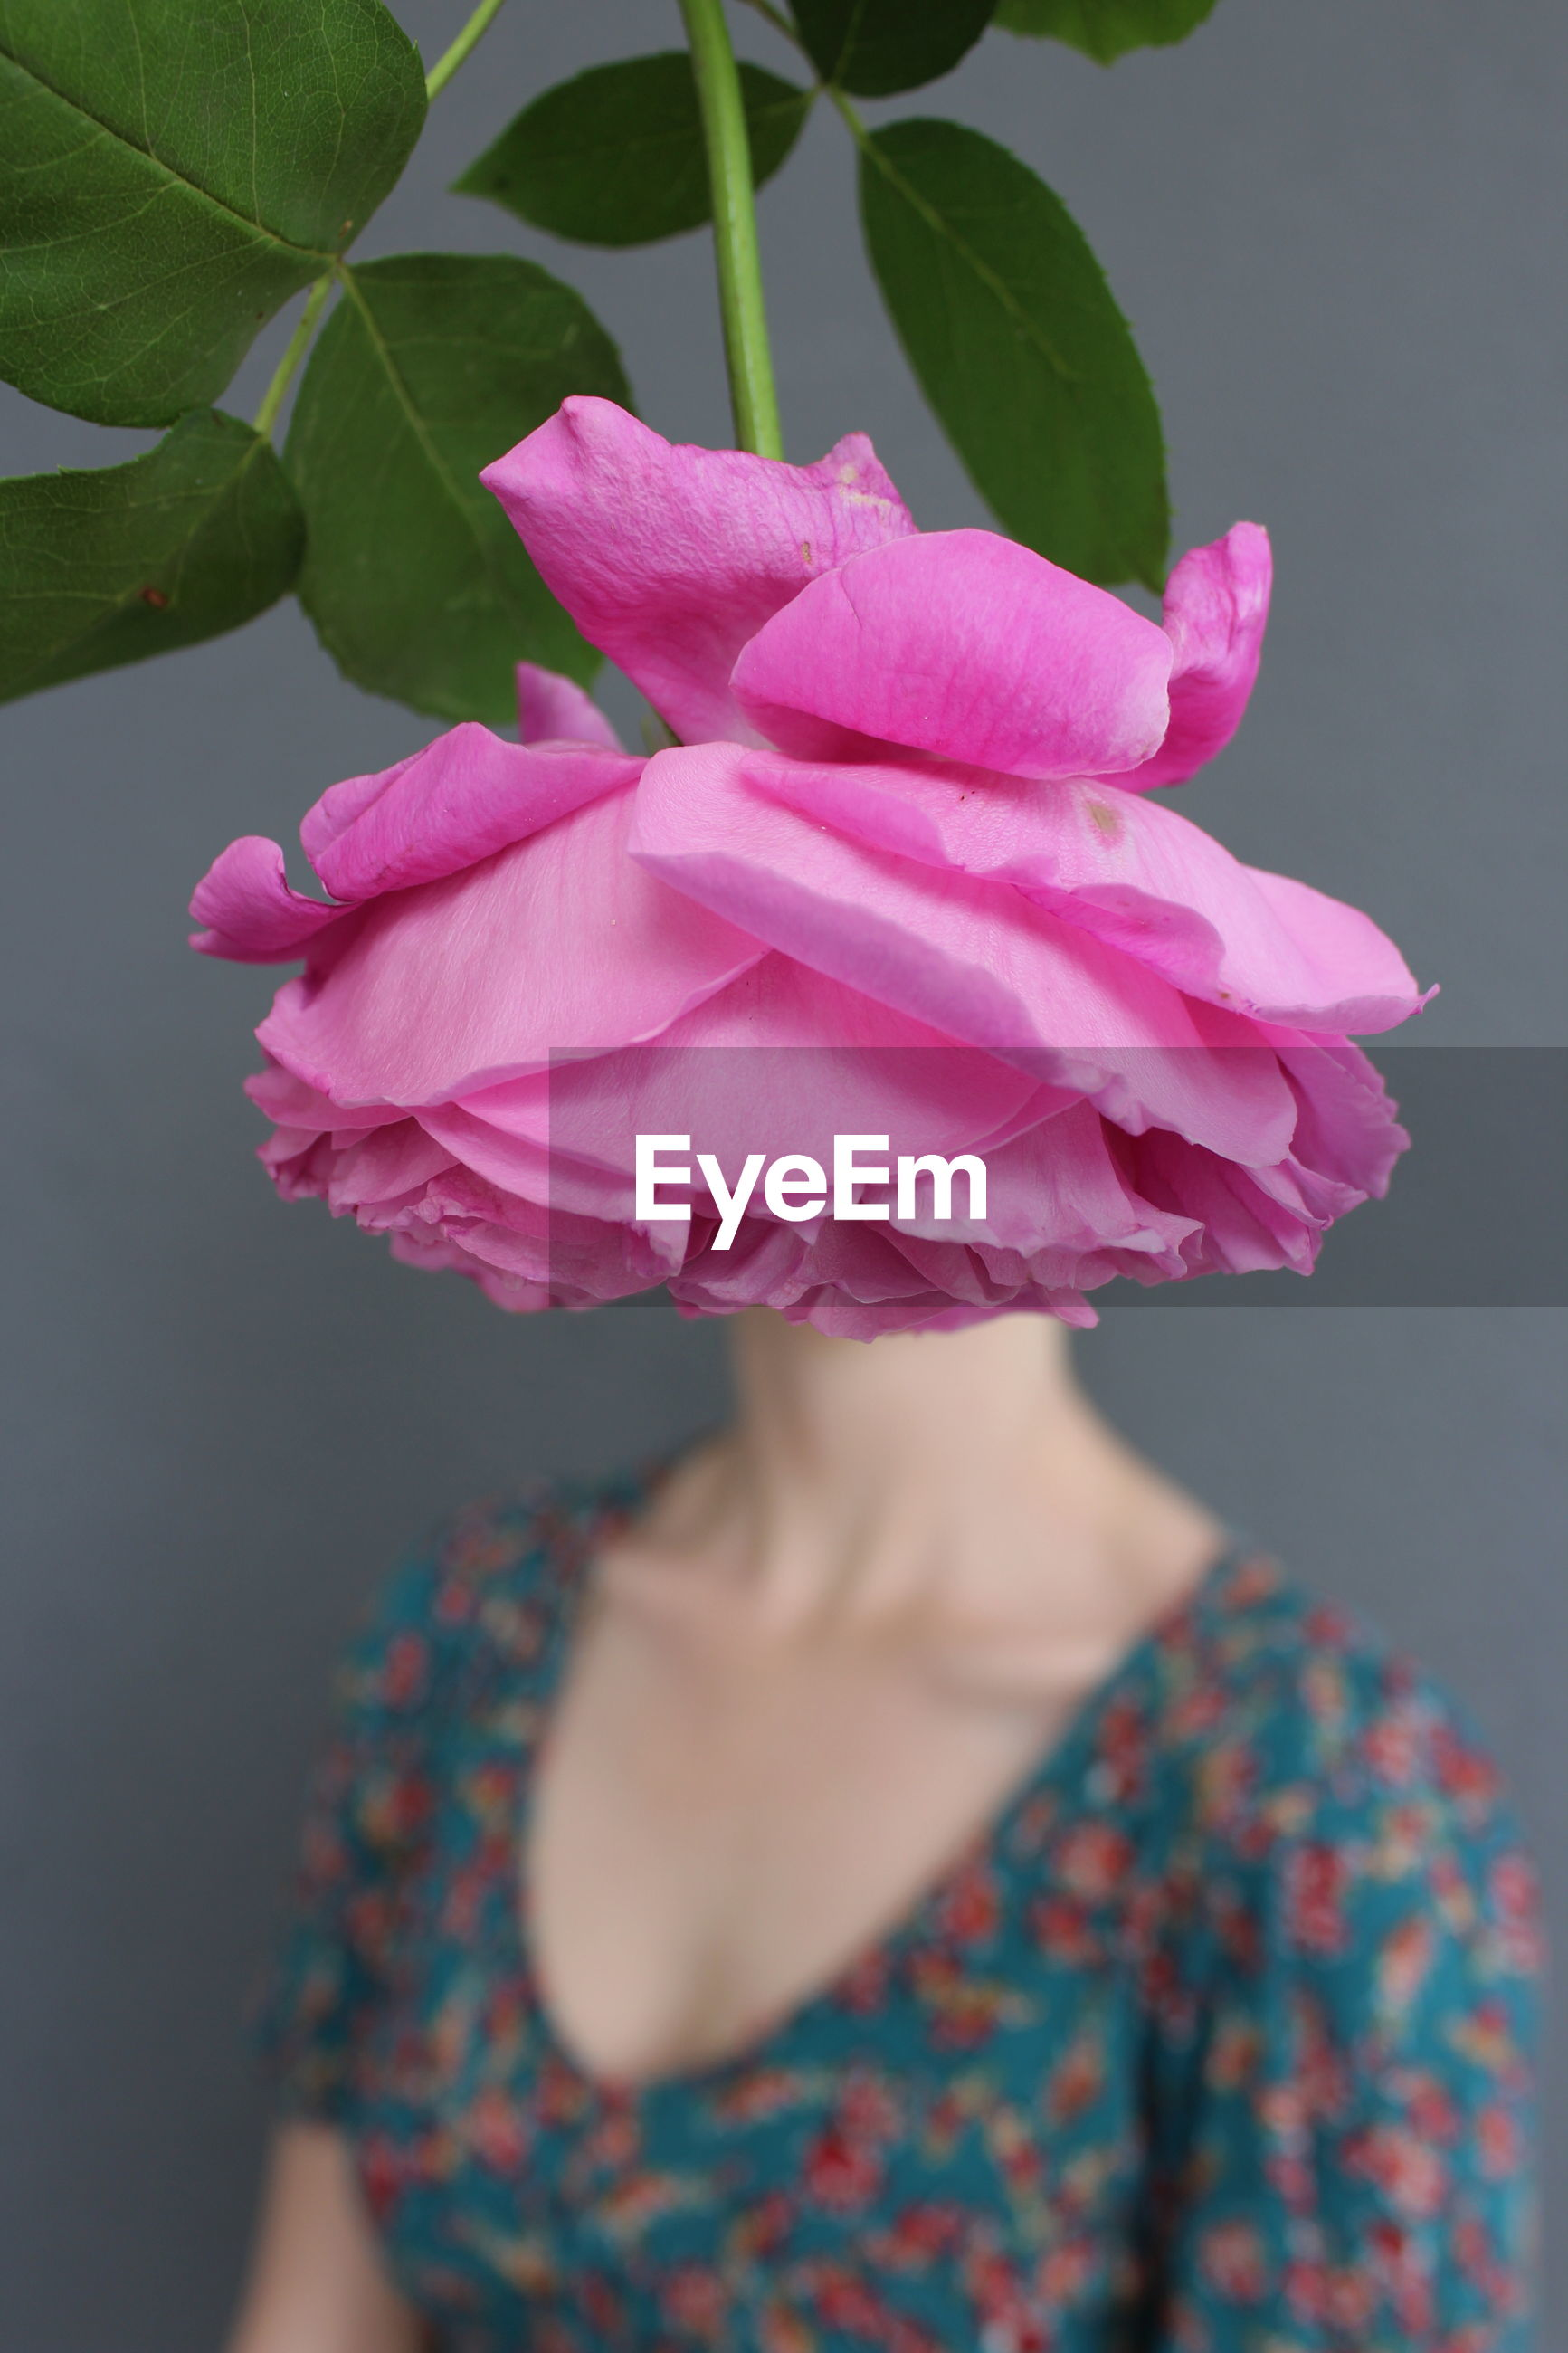 Close-up of pink rose over woman face in background